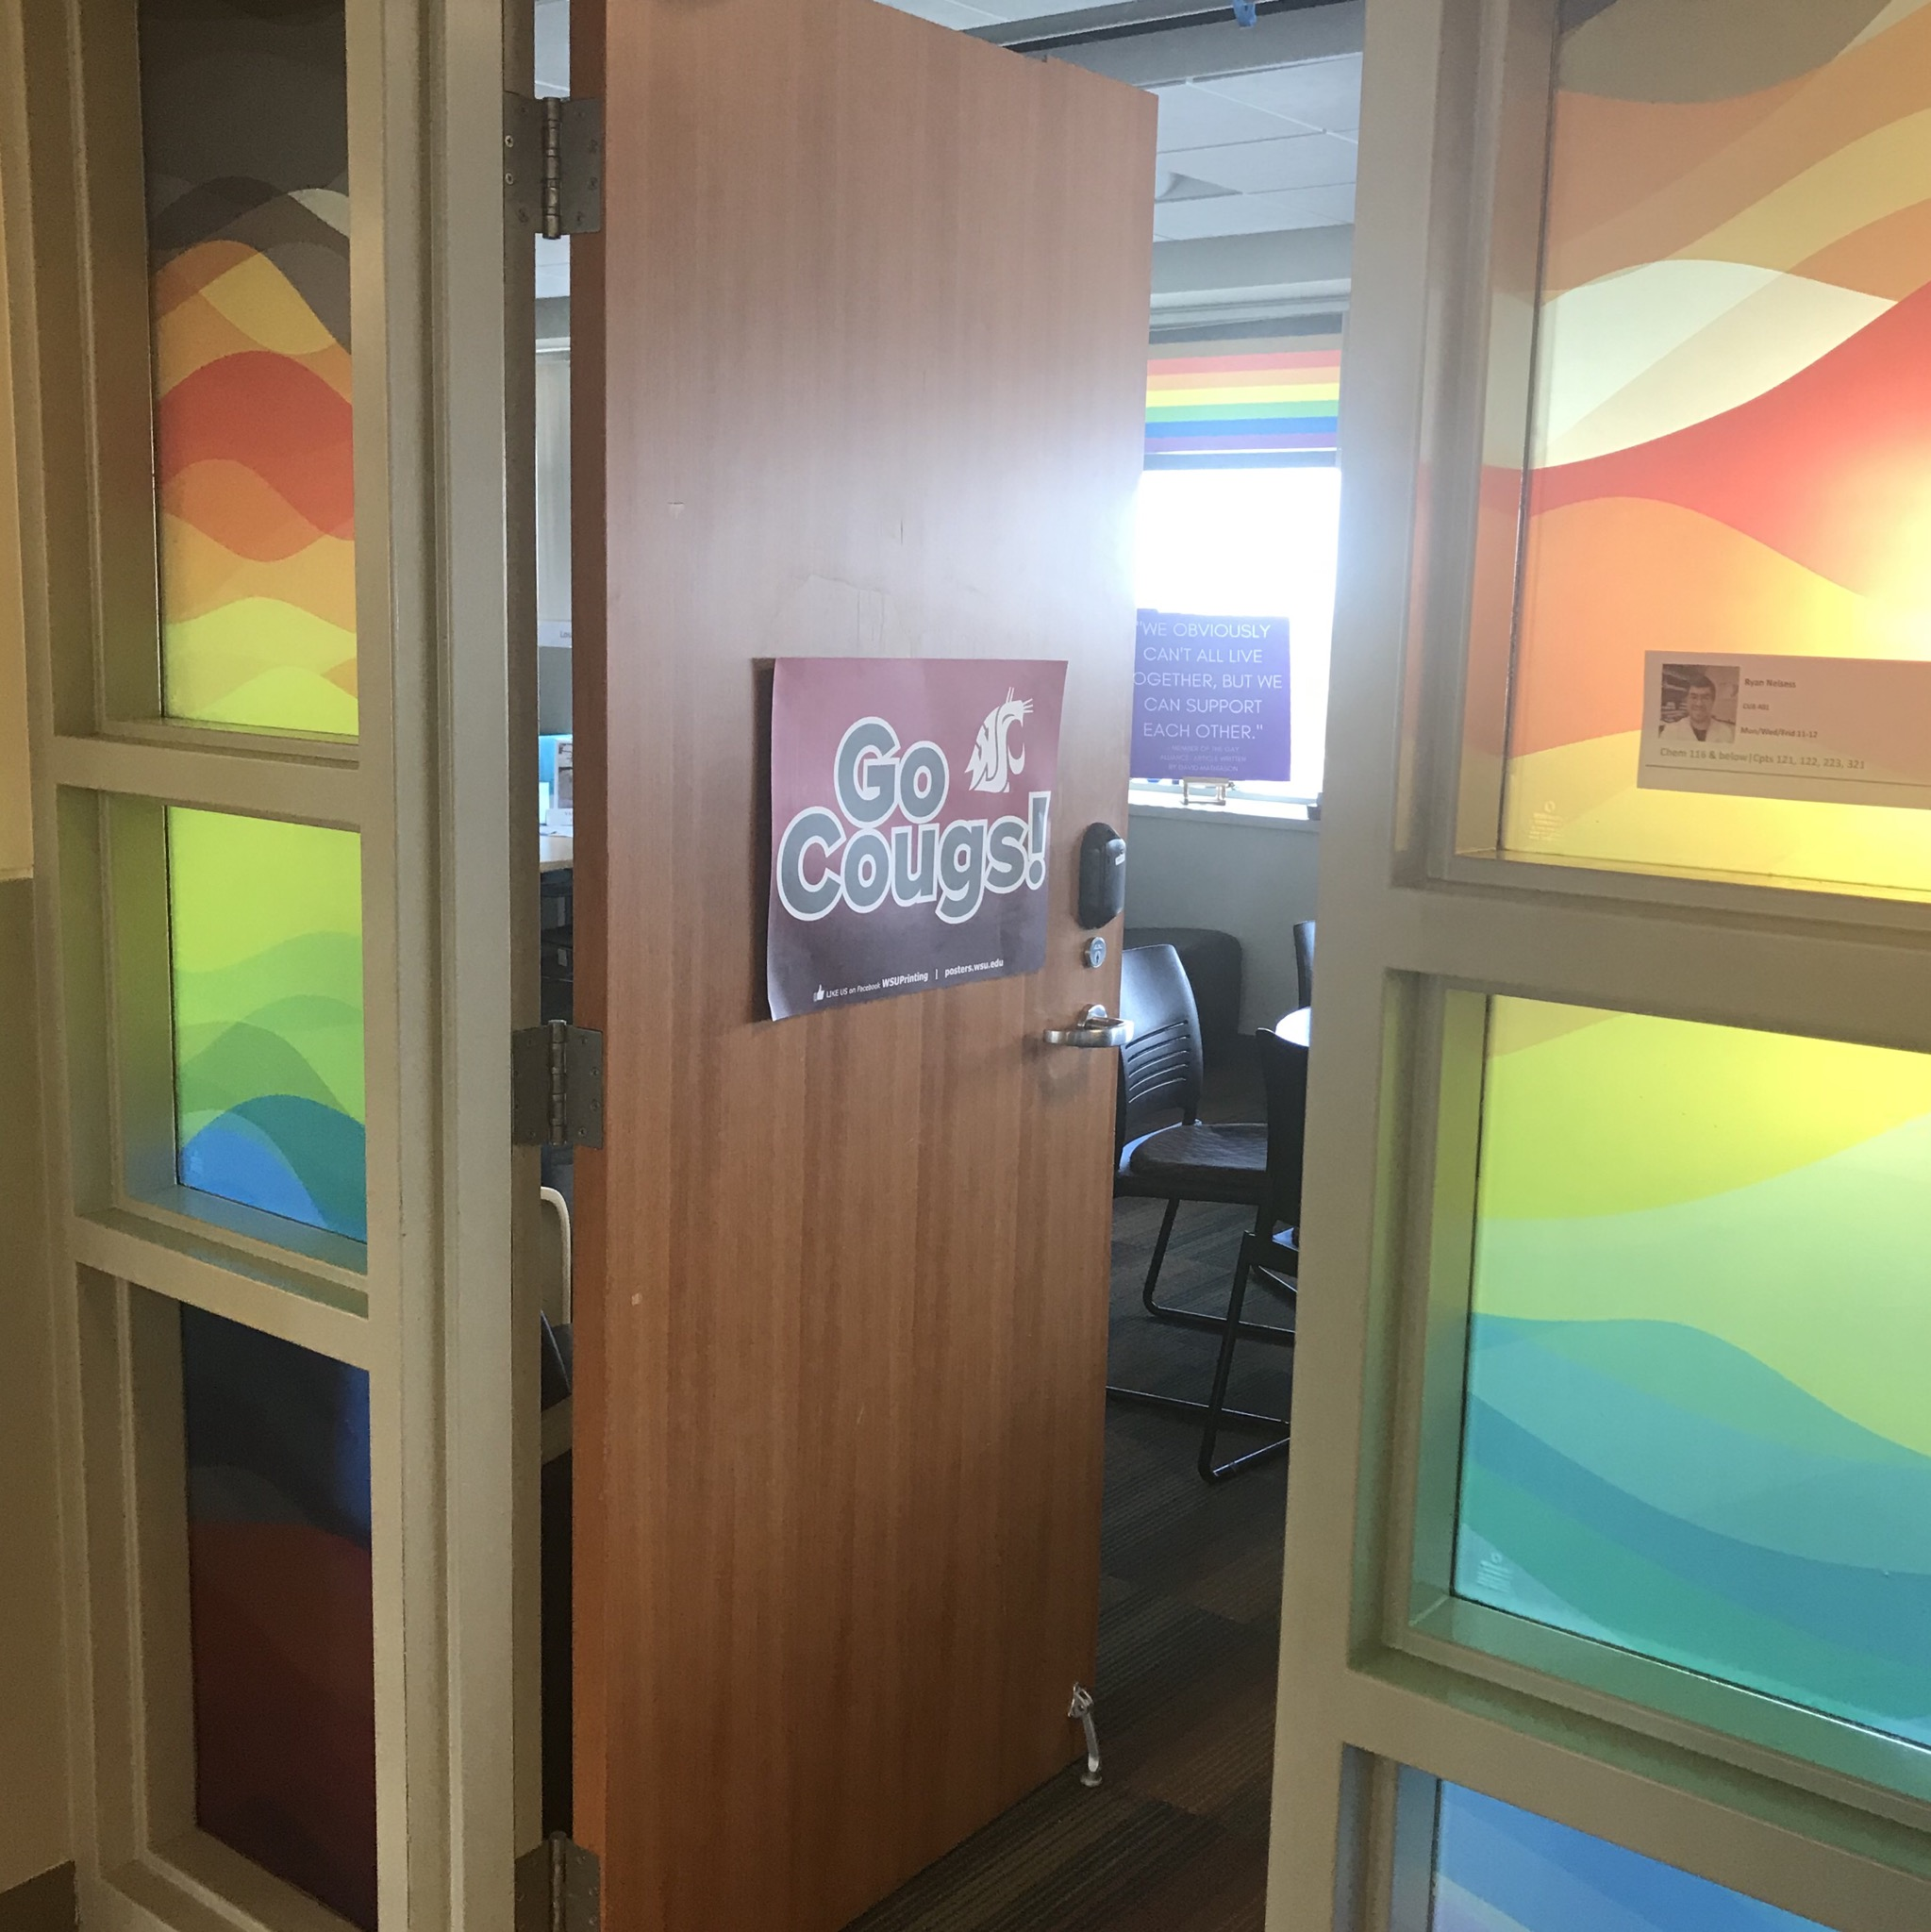 picture of the GIESORC door with a Go Cougs sign on it